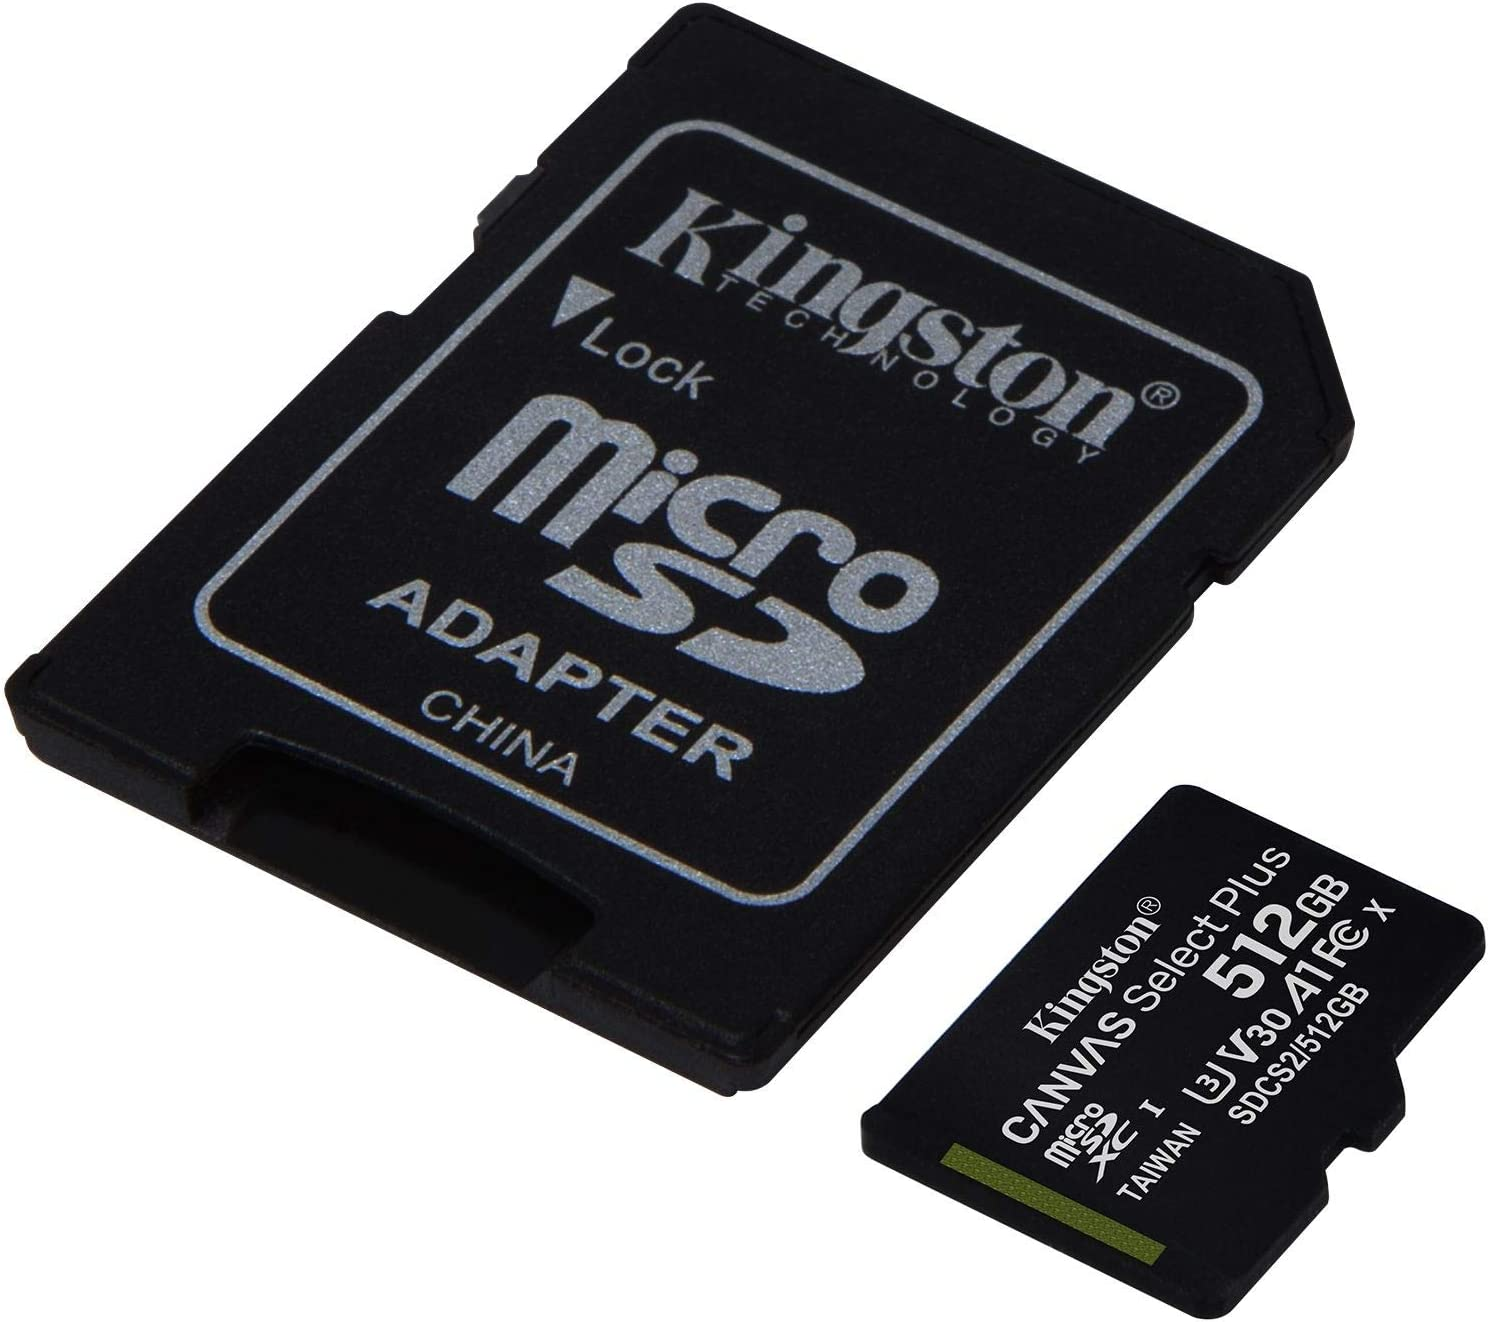 Kingston 512GB Lenovo A7000 MicroSDXC Canvas Select Plus Card Verified by SanFlash. (100MBs Works with Kingston)